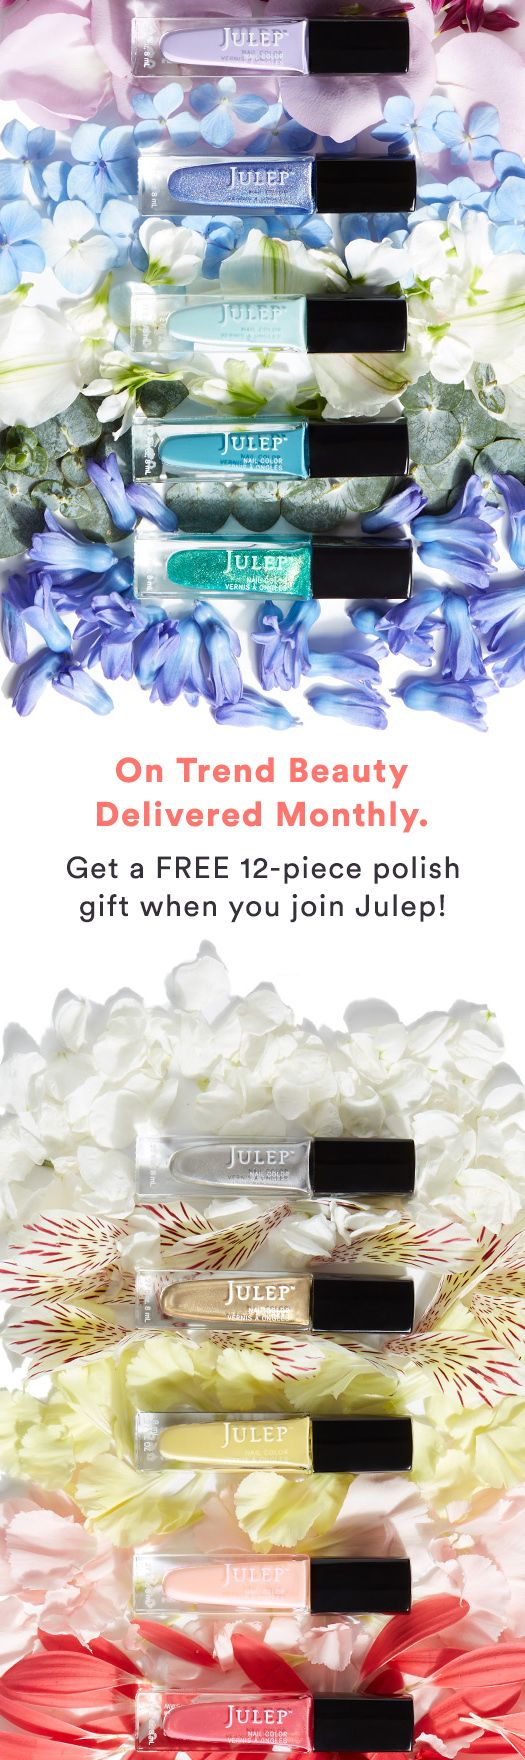 Join Julep Beauty Box and get full-size beauty, polish, and skincare delivered to your door every month. Plus, get a 12-piece polish gift ON US ($168 value) when you join! Offer ends 4/15.